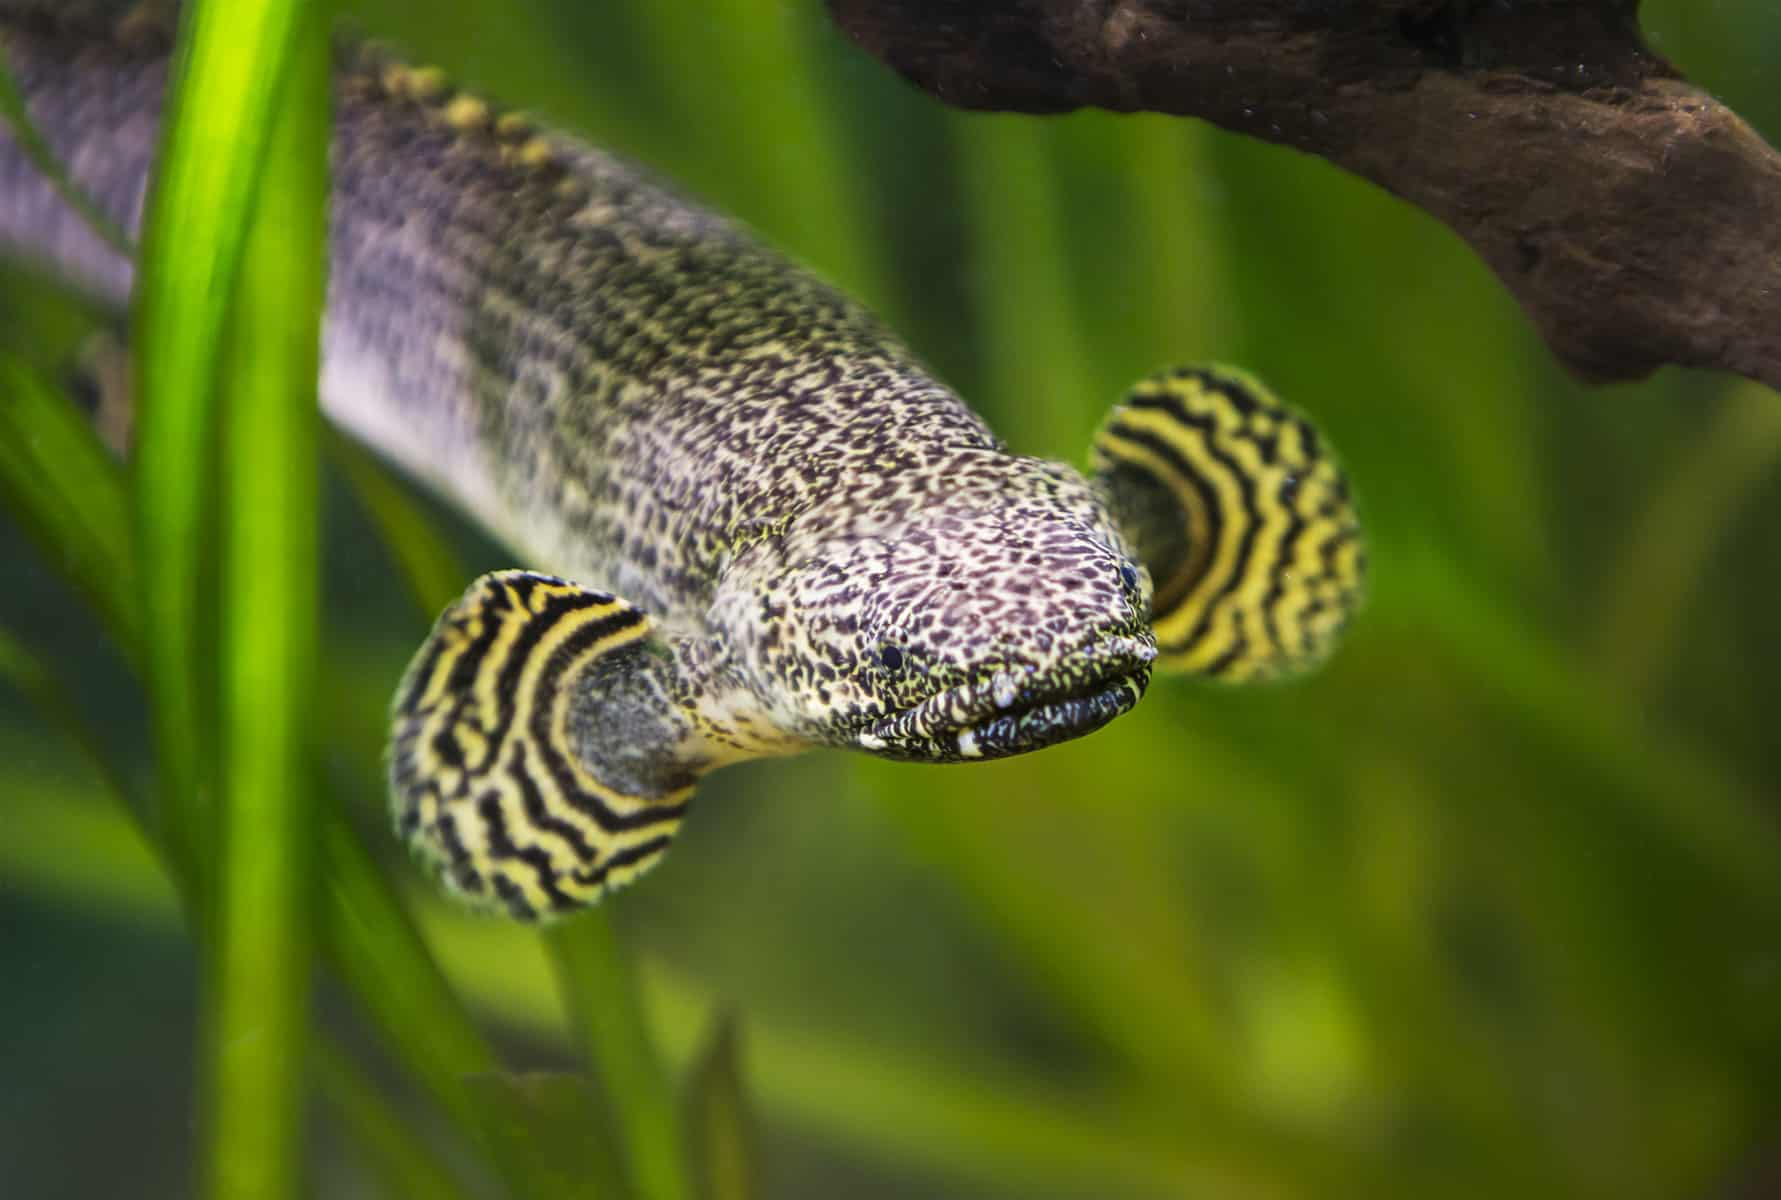 Ornate Bichir The Complete Care Guide Aquariadise